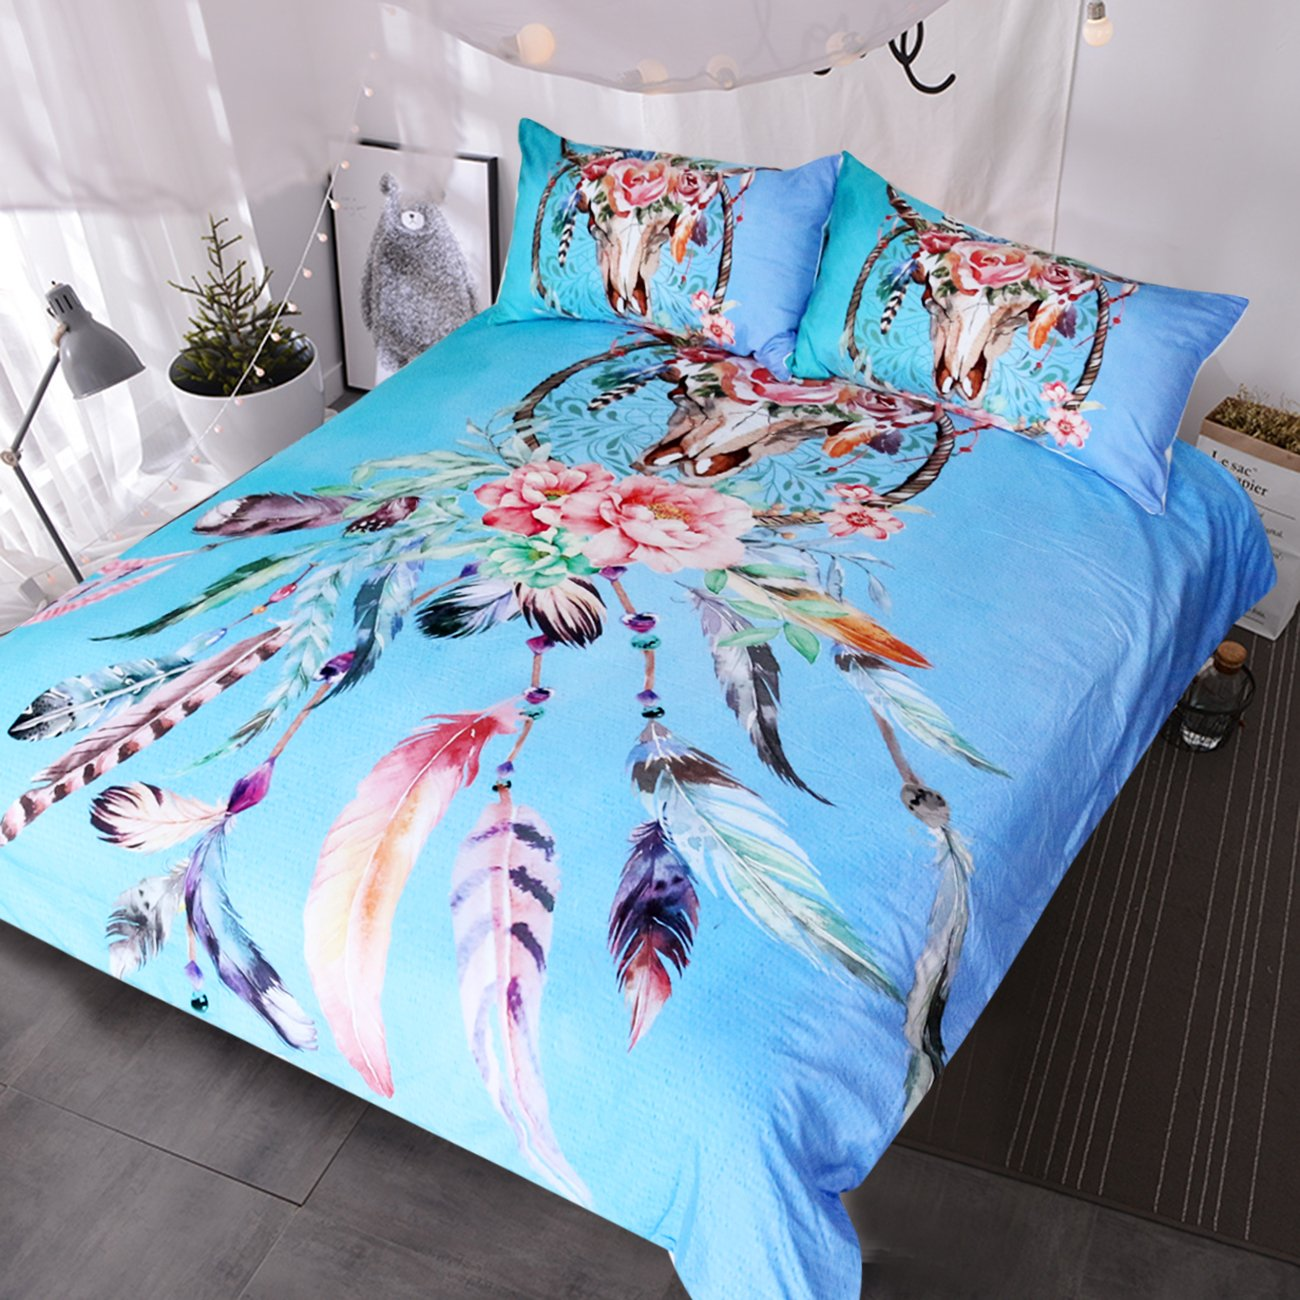 Blessliving Buffalo Skull with Feathers Dreamcatcher Bedding Southwestern Boho Chic Duvet Cover Colorful Tribal Bed Set (Queen, Aqua)